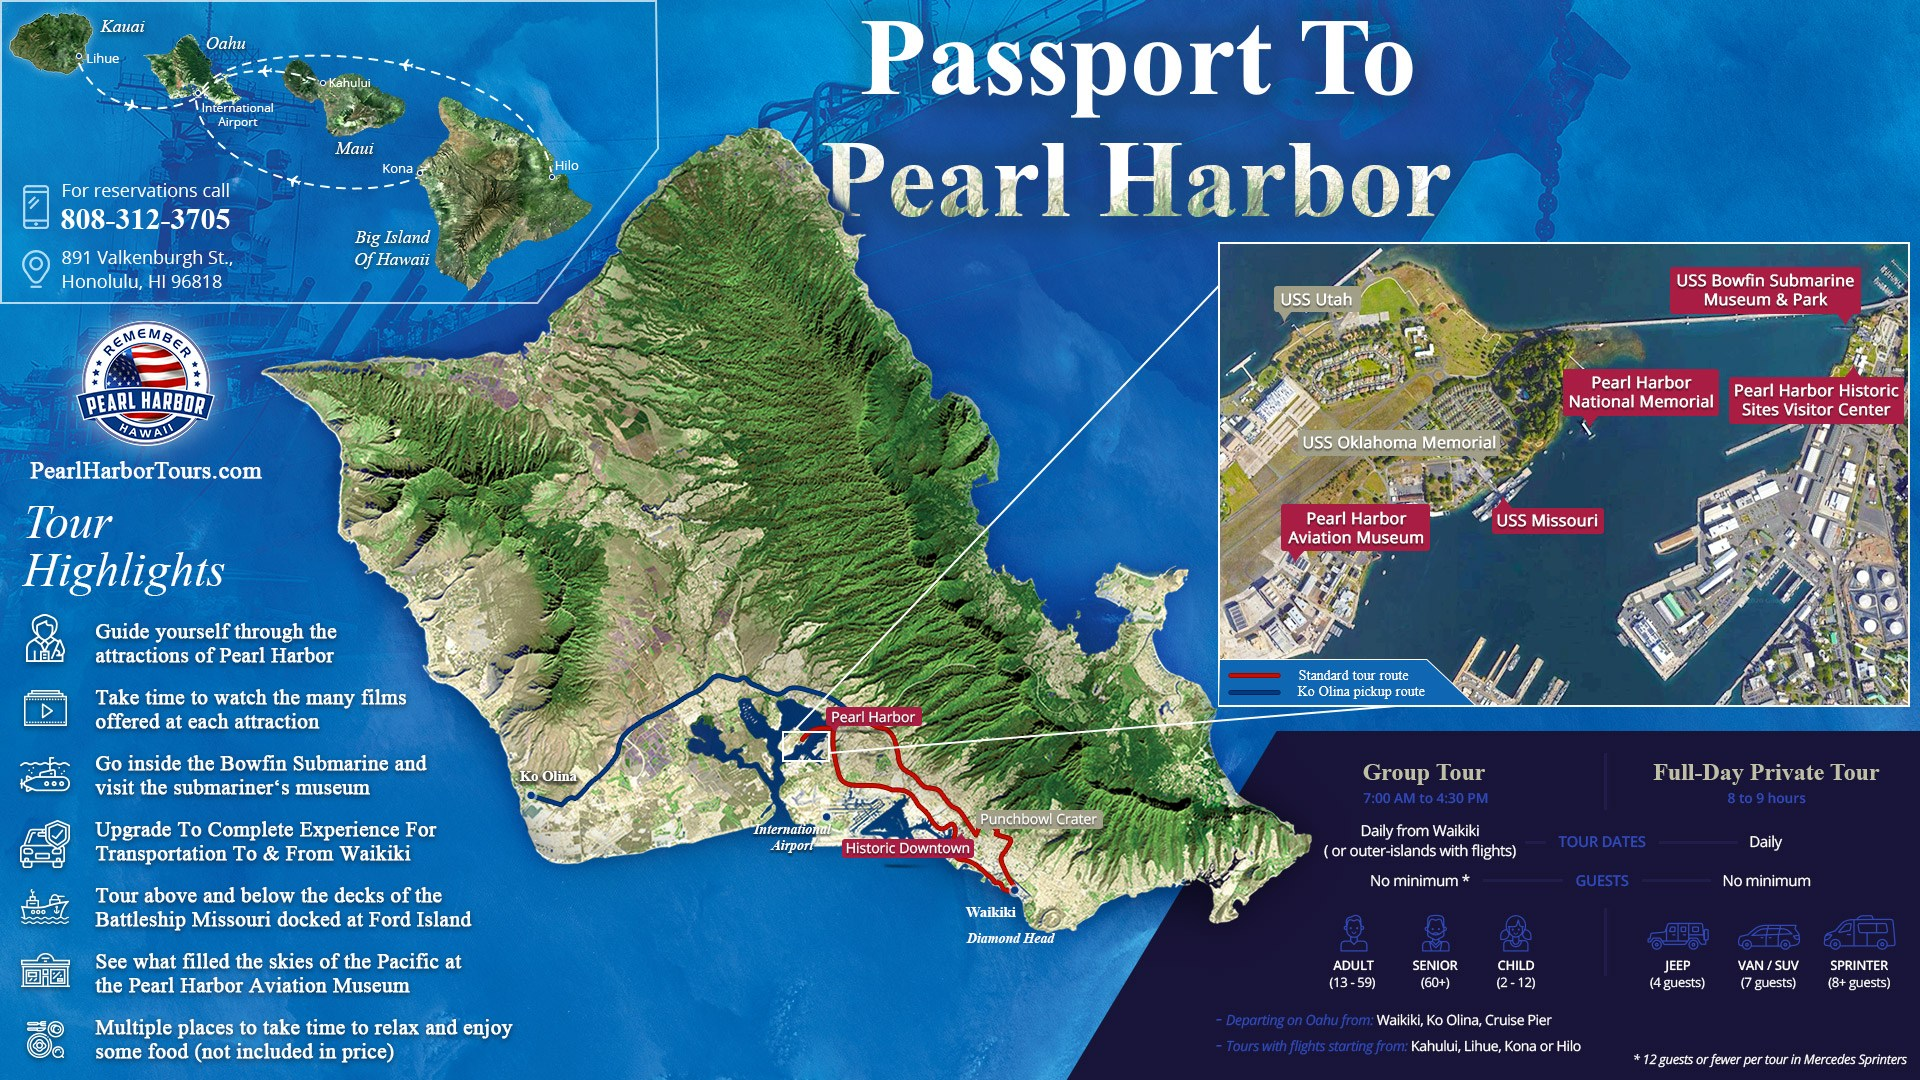 Passport To Pearl Harbor Map